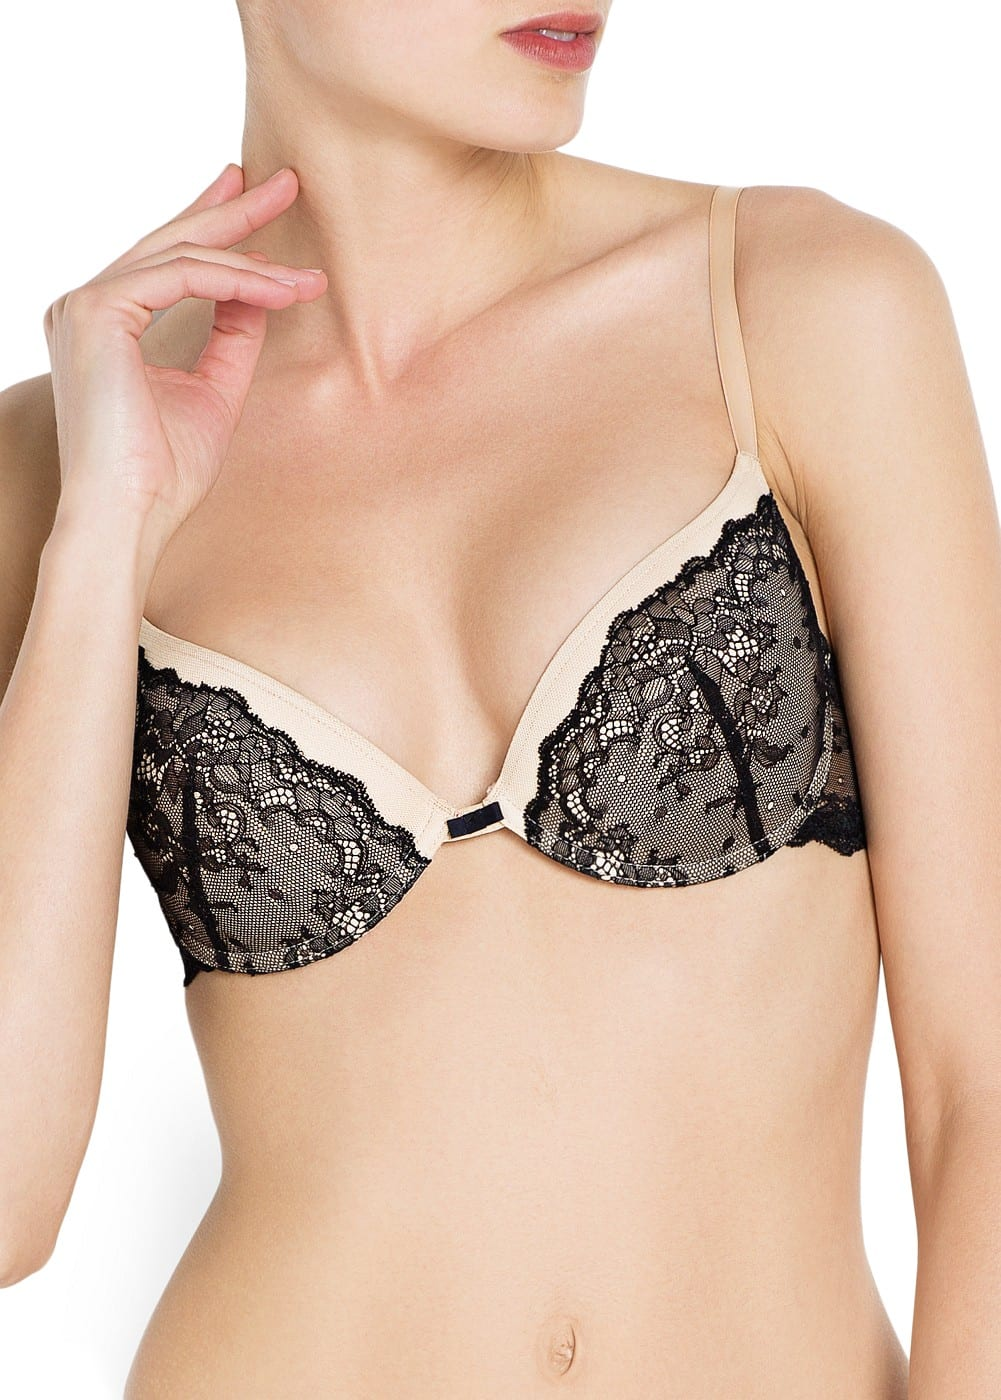 Bicolor lace push-up bra